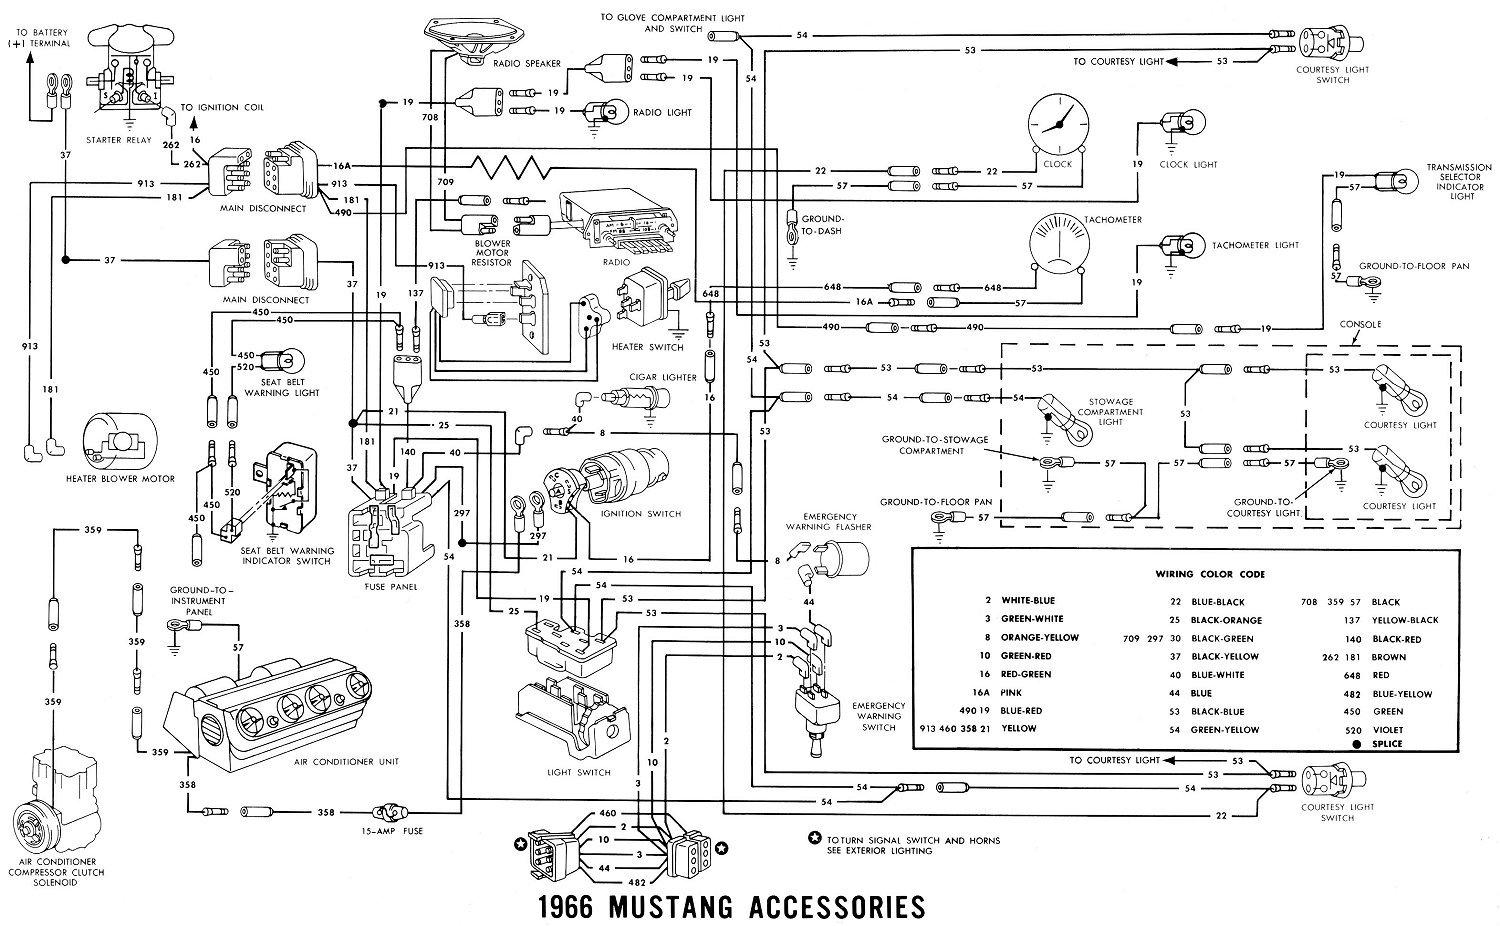 66acces1 1969 mustang dash wiring diagram 1969 mustang wiring routing 1967 mustang instrument cluster wiring diagram at readyjetset.co